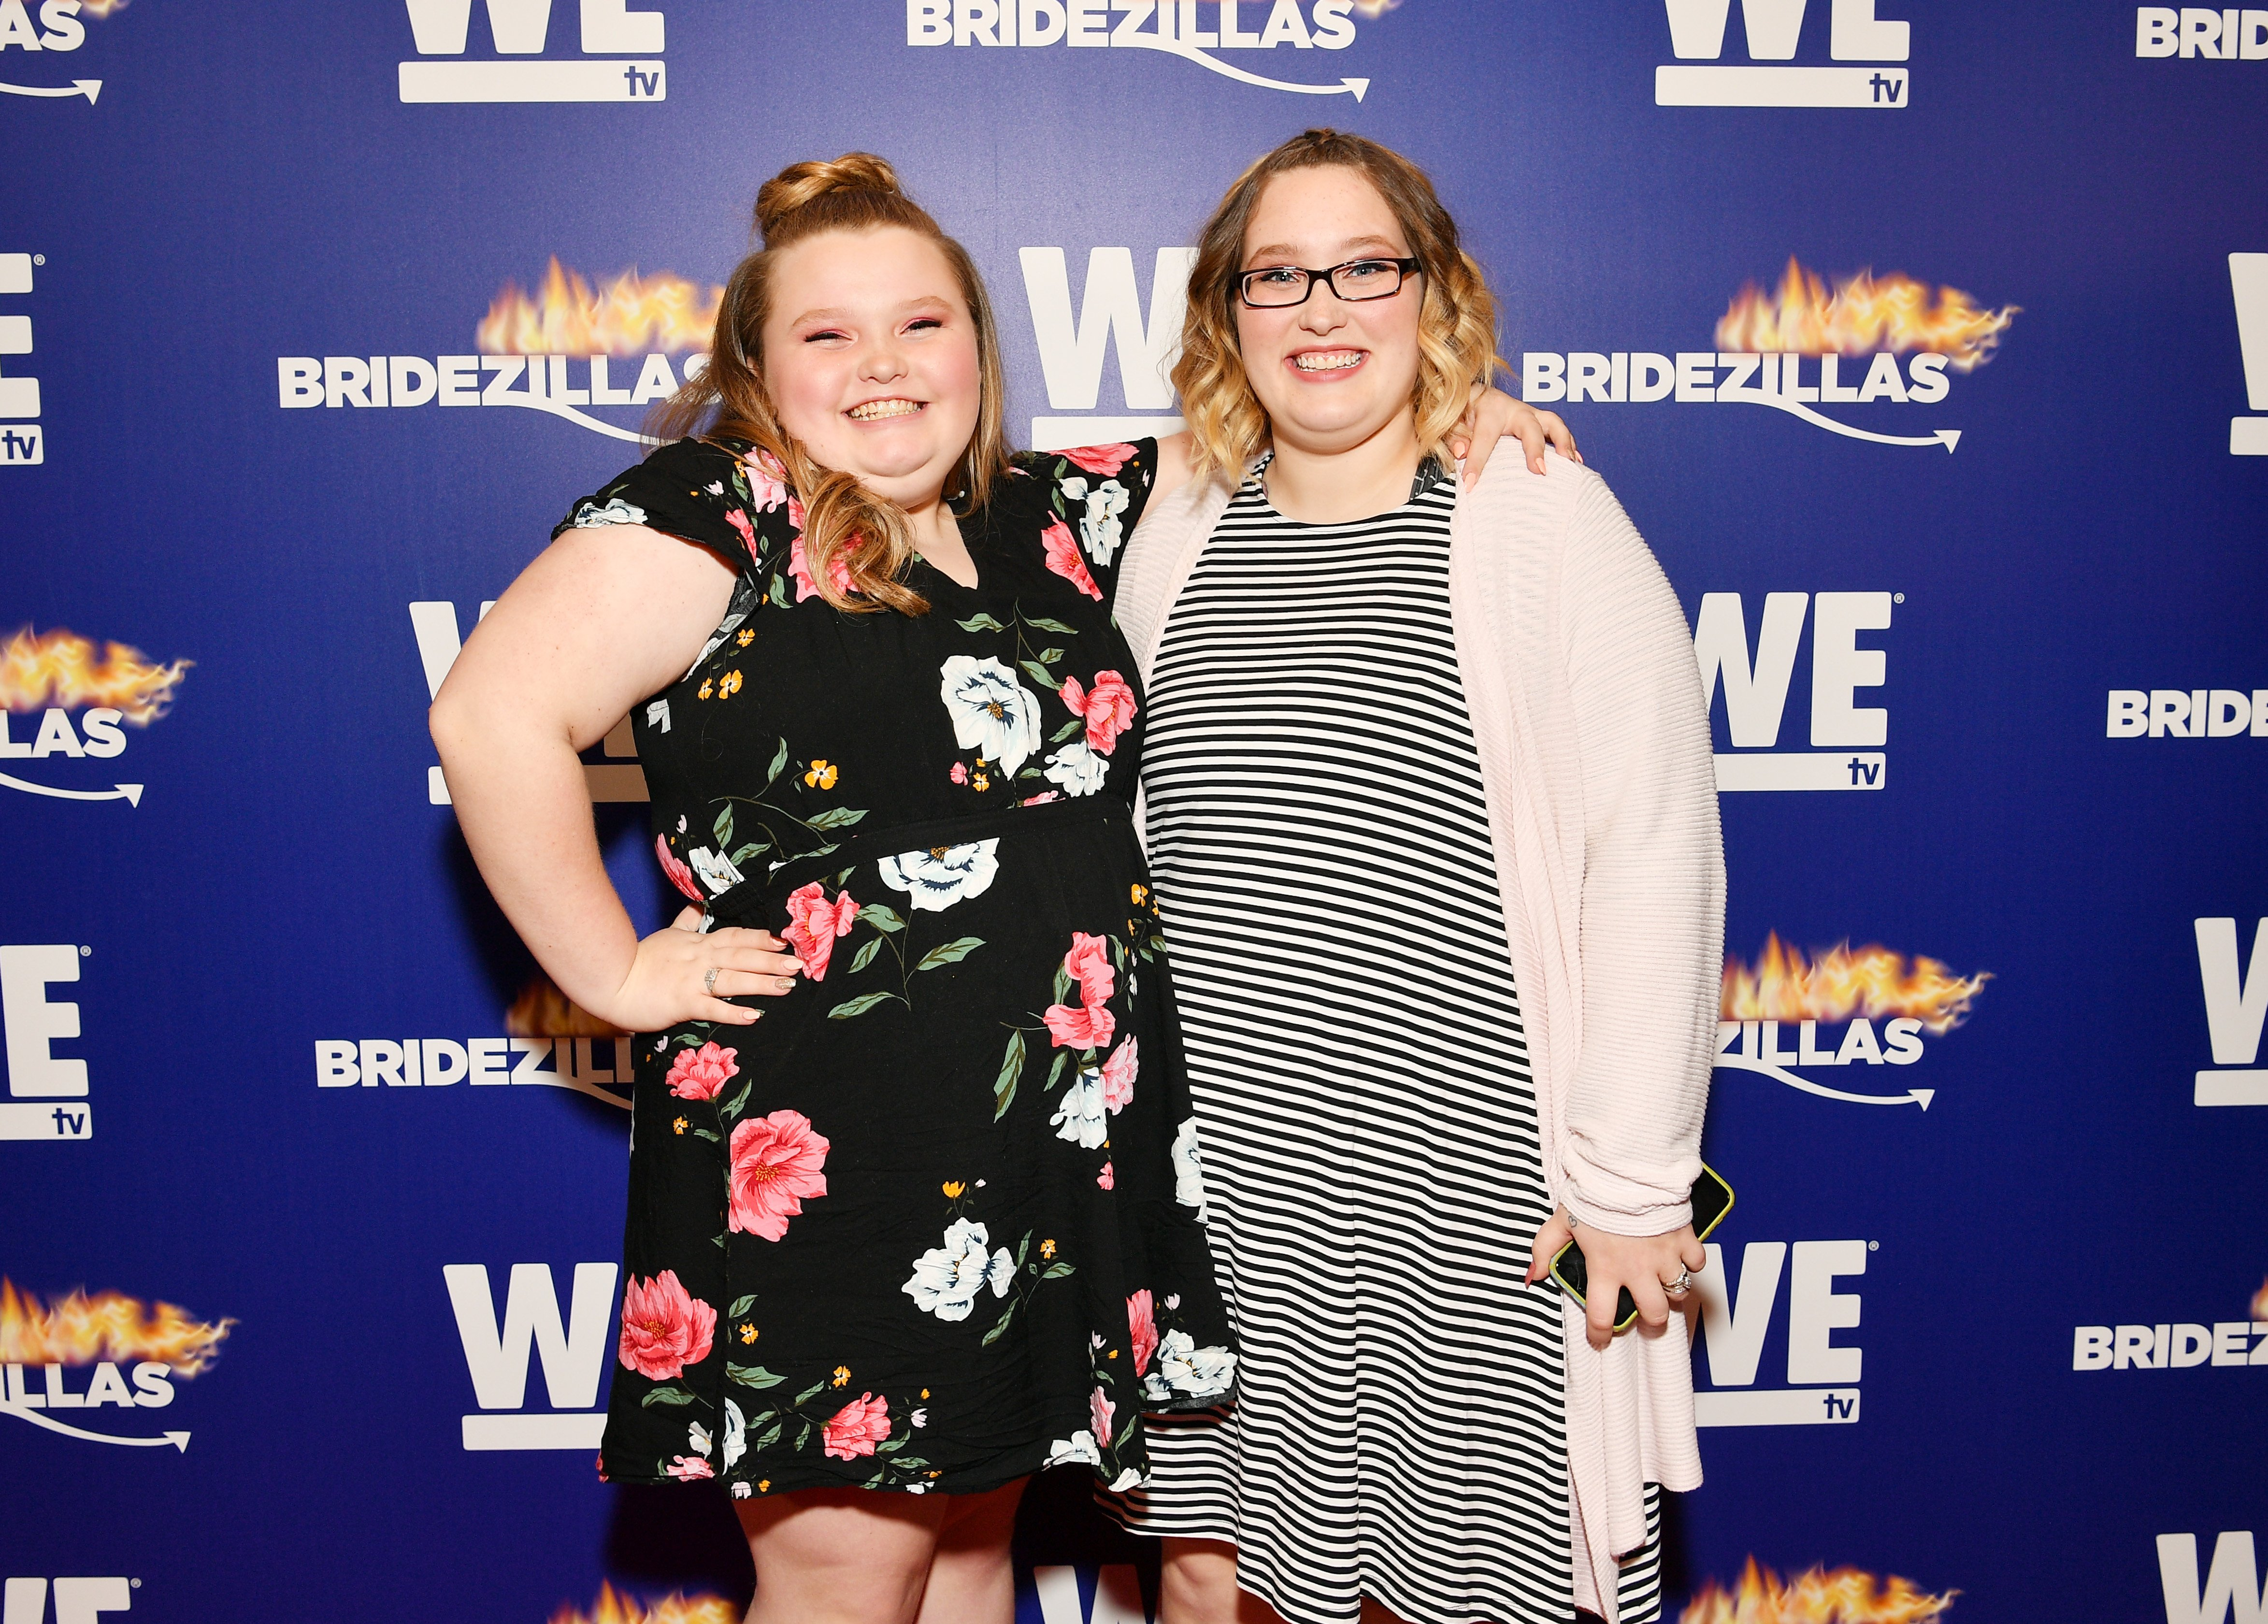 """Alana """"Honey Boo Boo"""" Thompson and Lauryn 'Pumpkin' Shannon at WE tv's premiere of """"Bridezillas"""" on March 13, 2019. 